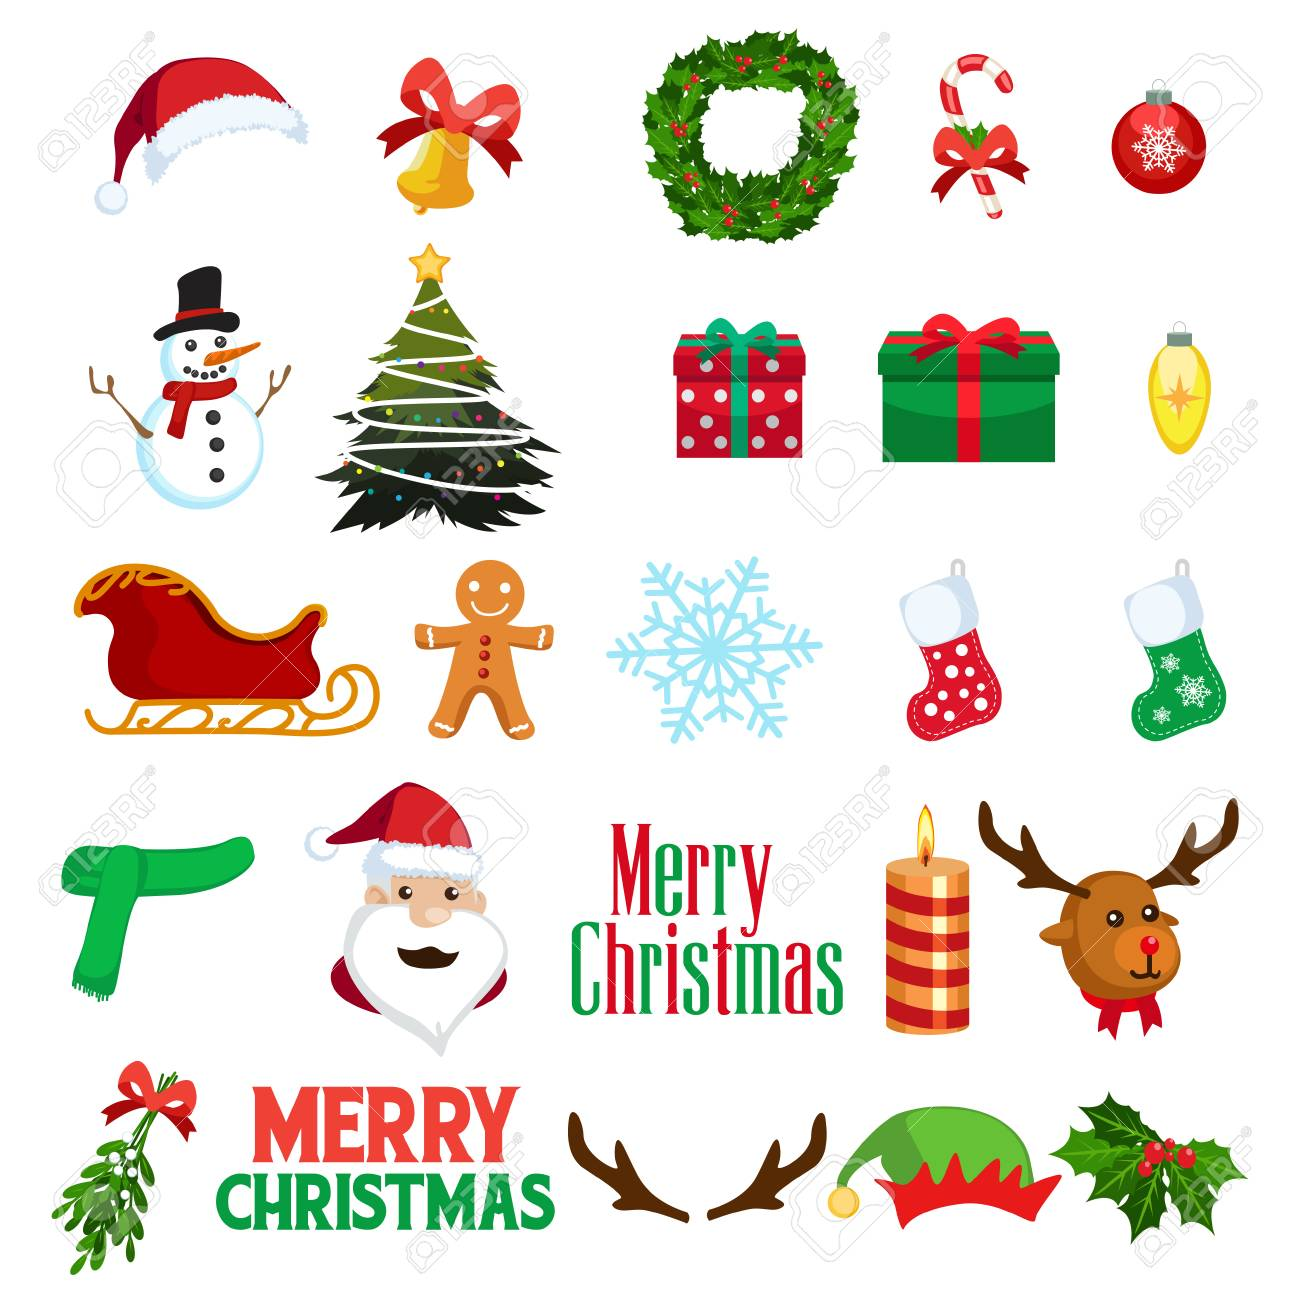 hight resolution of a vector illustration of christmas winter clipart icons stock vector 78086063